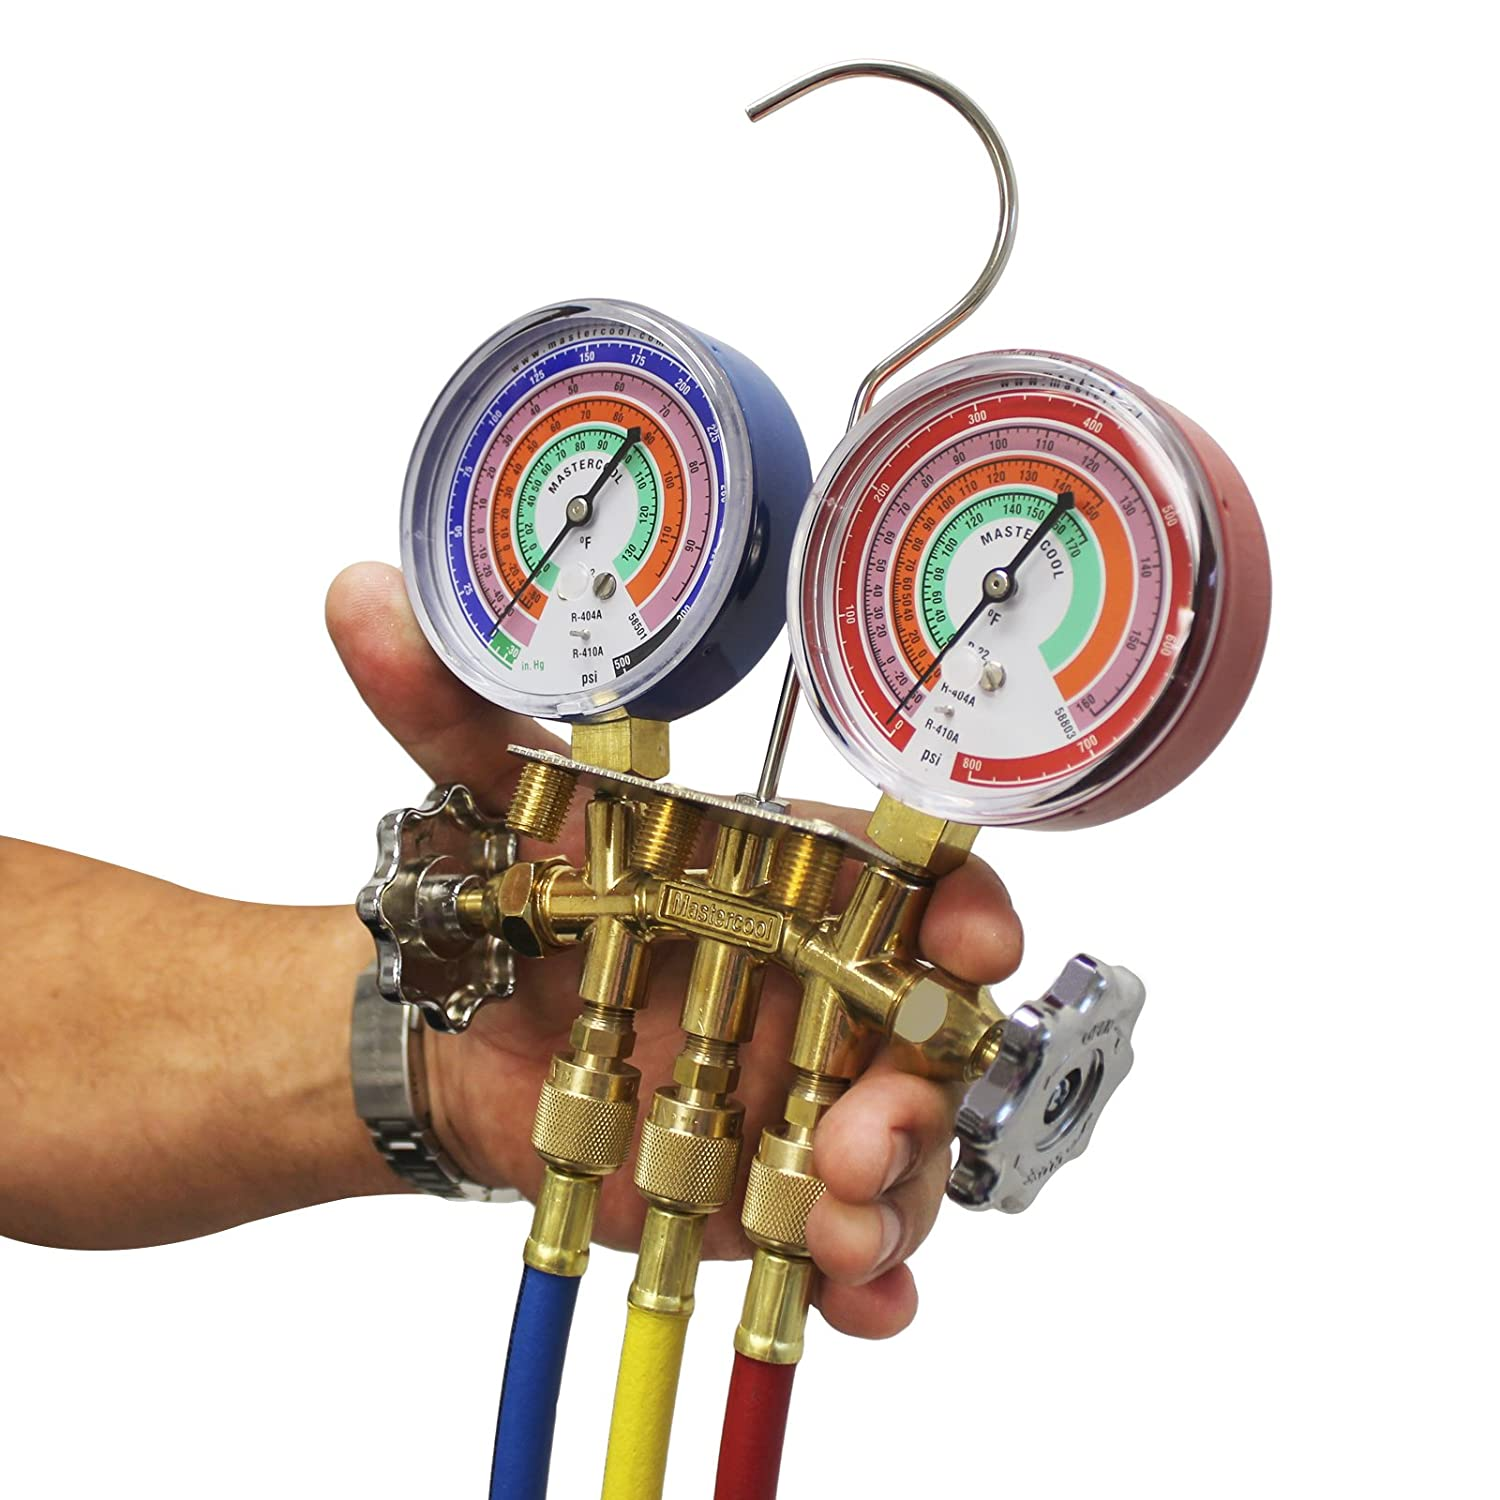 3-60 Inch Hoses and Standard 1//4 Inch Fittings R404A 2-Way Manifold Gauge Set with 3-1//8 Inch Gauges R22 Mastercool 59161 Brass R410A